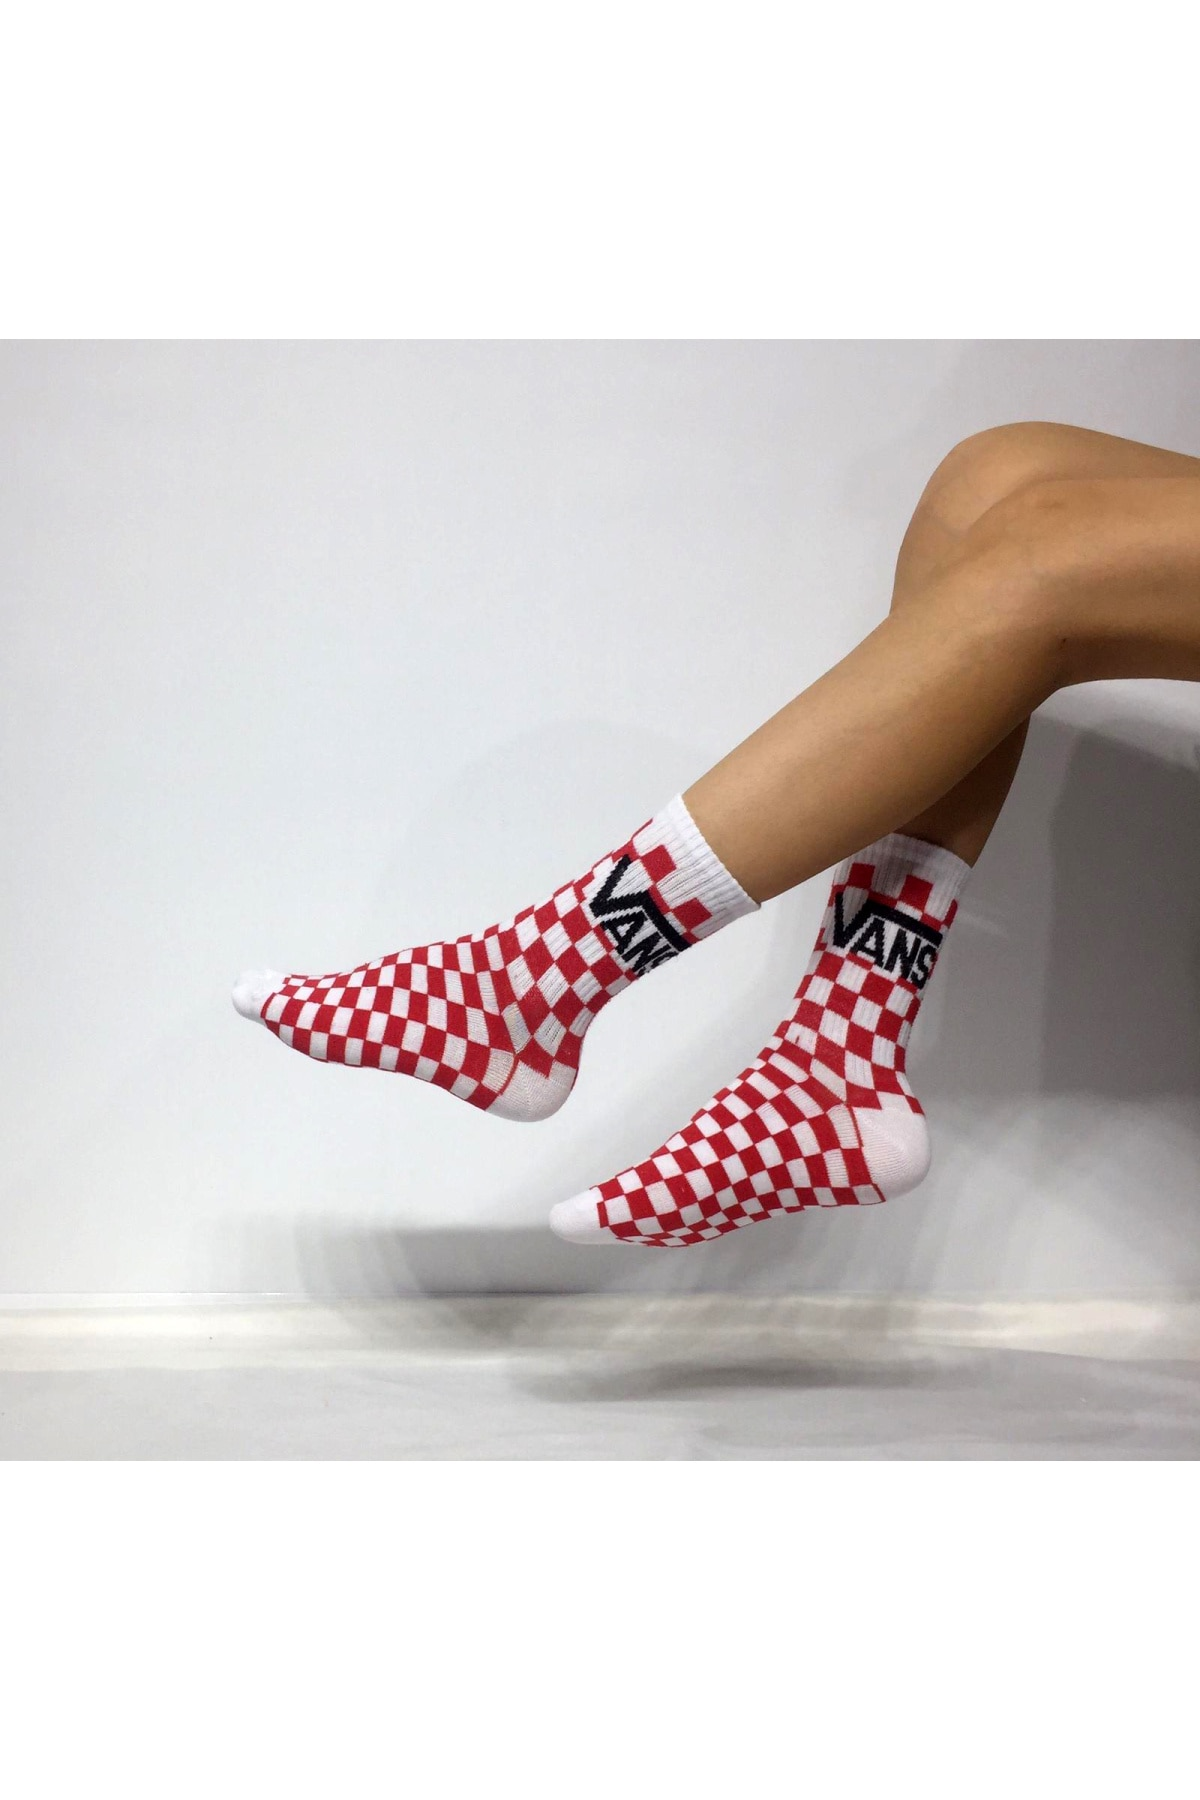 Iconsocks Vans Patterned College Socks